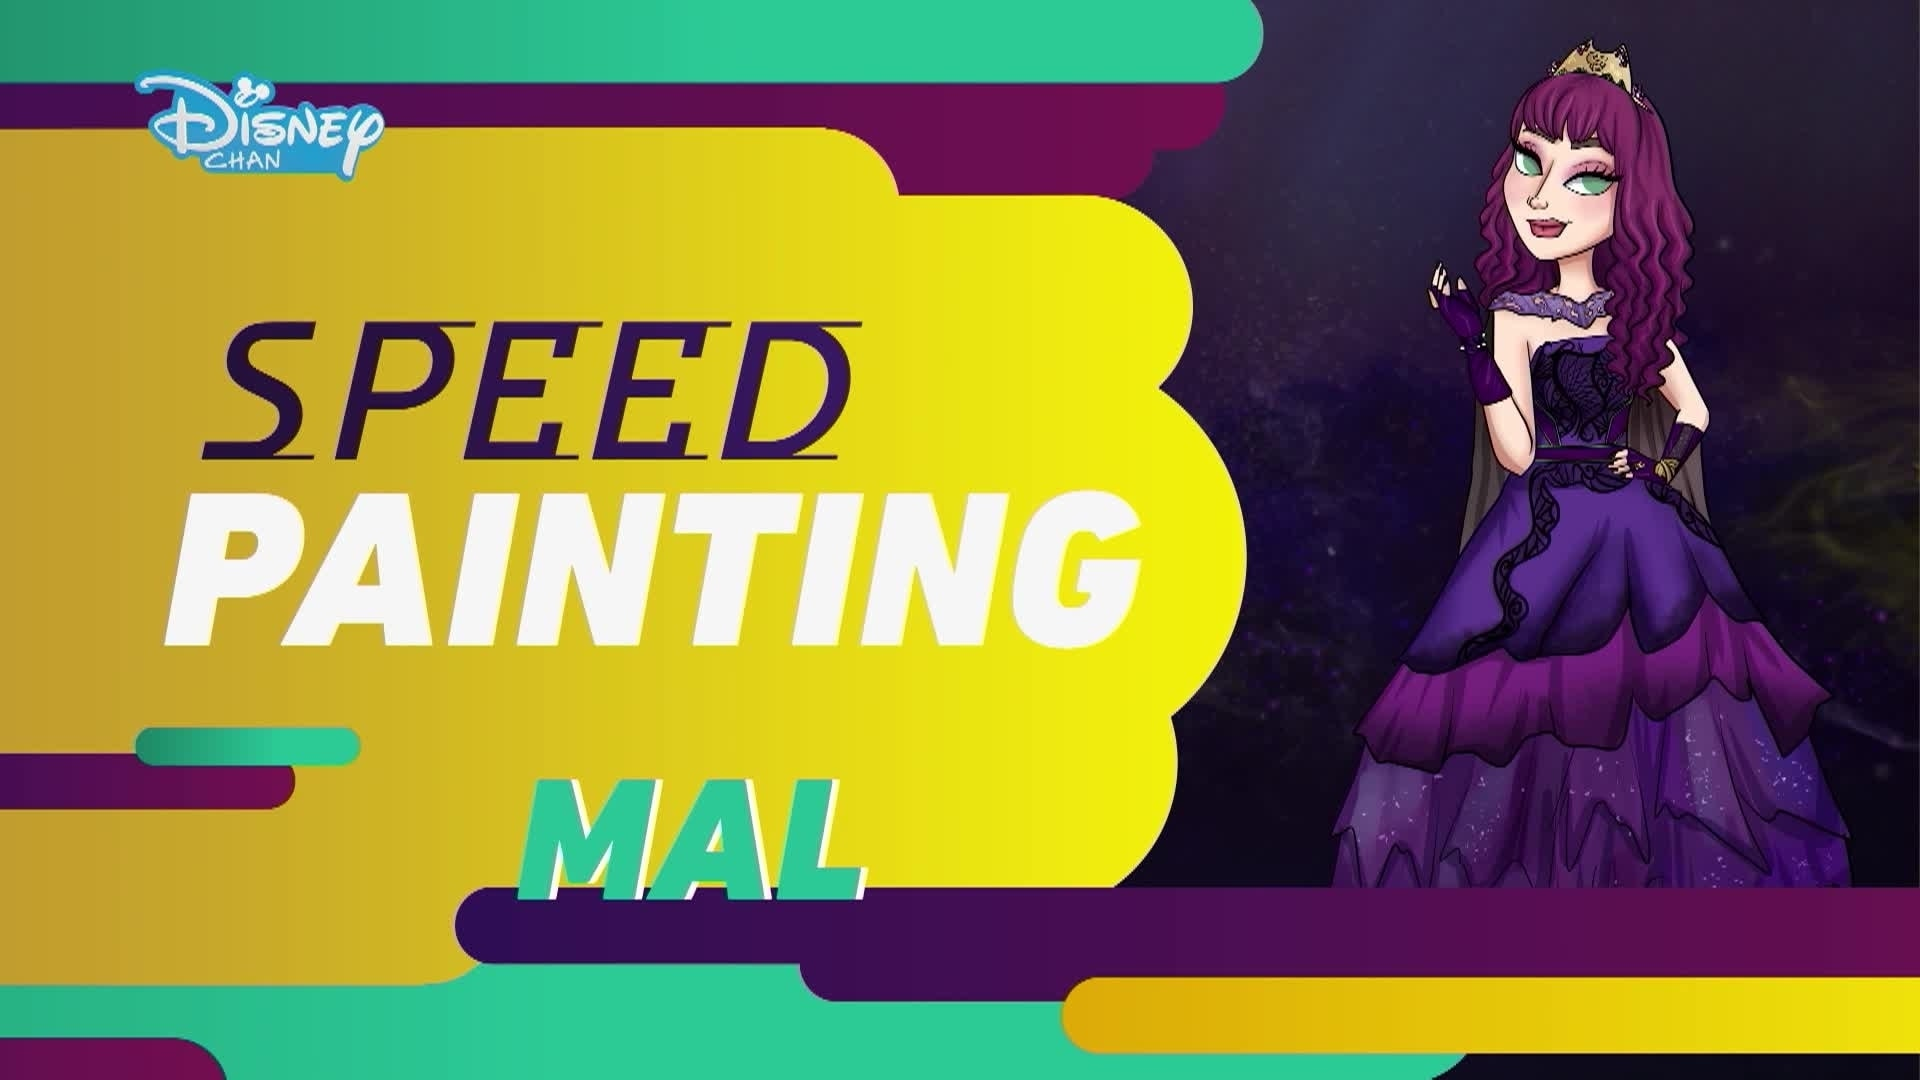 Os Descendentes 2:  Speed Painting - Mal no Baile